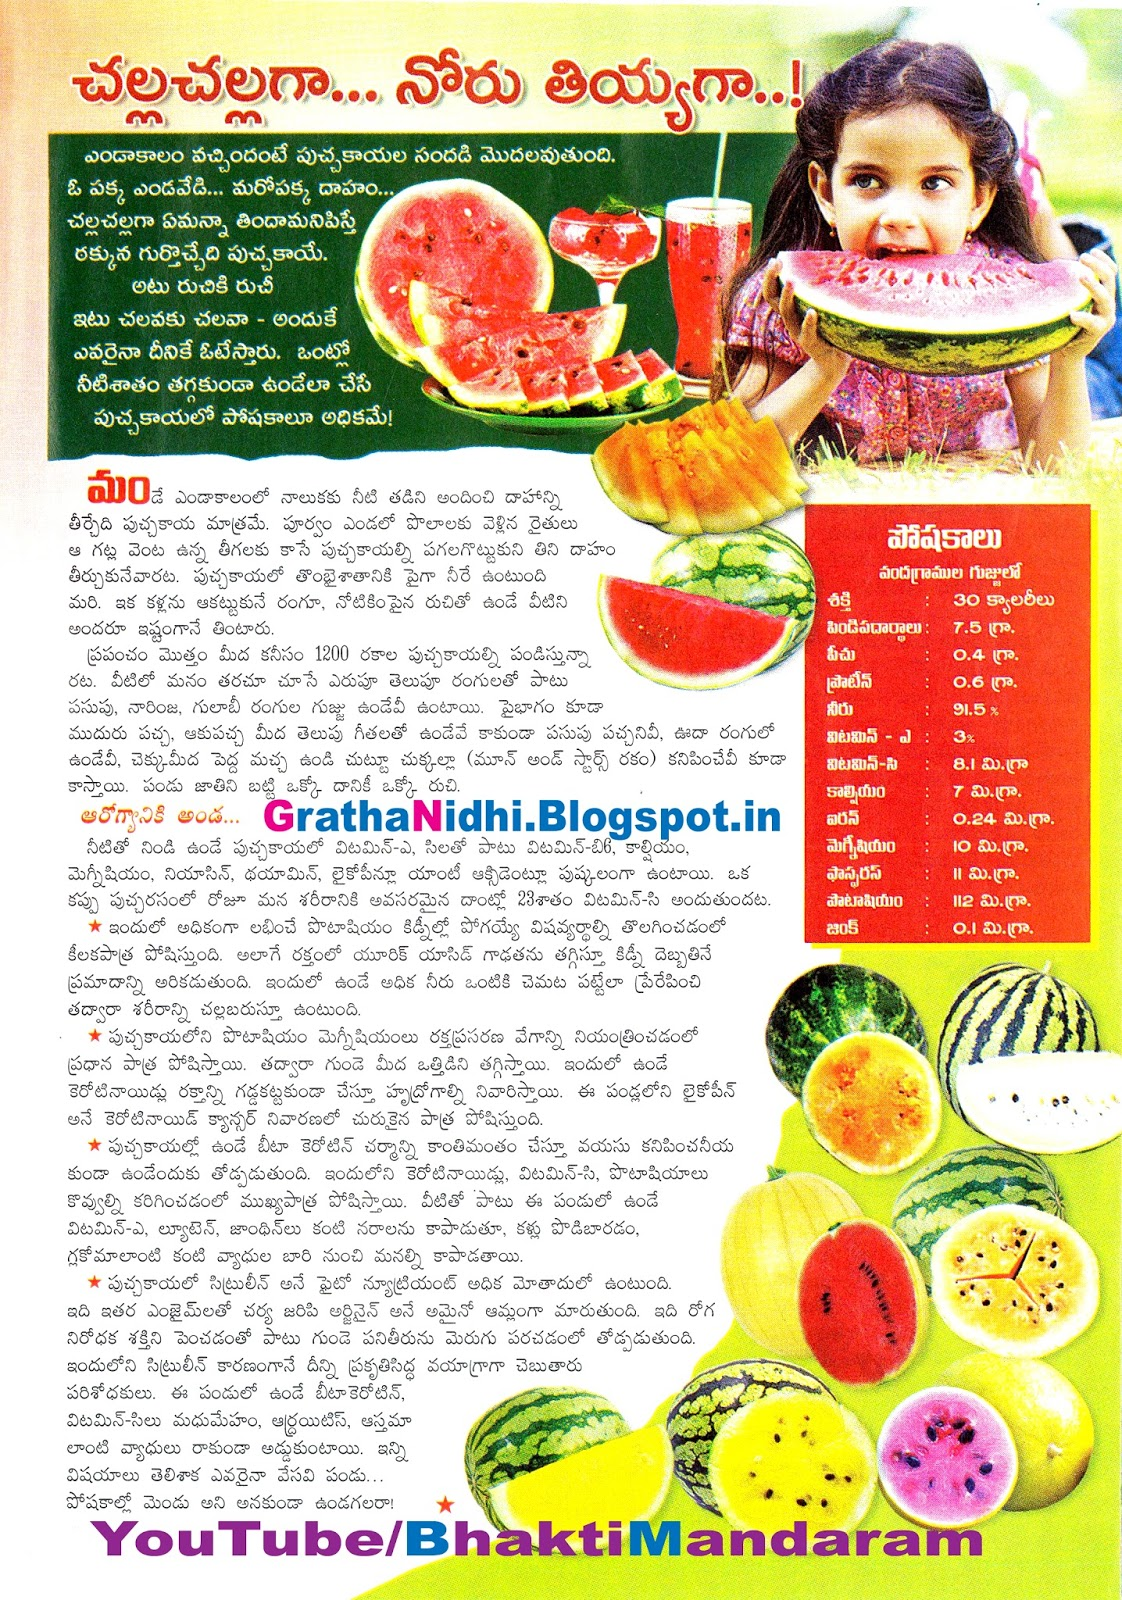 చల్ల చల్ల గా... నోరు తీయగా...! Watermelon Hot Summer Cool Cool Summer Watermelon Melon Putchhakaya Eenadu Sunday Magazine Eenadu Sunday Eenadu Sunday Magazine Cover Story Bhakthi Pustakalu Bhakti Pustakalu BhakthiPustakalu BhaktiPustakalu